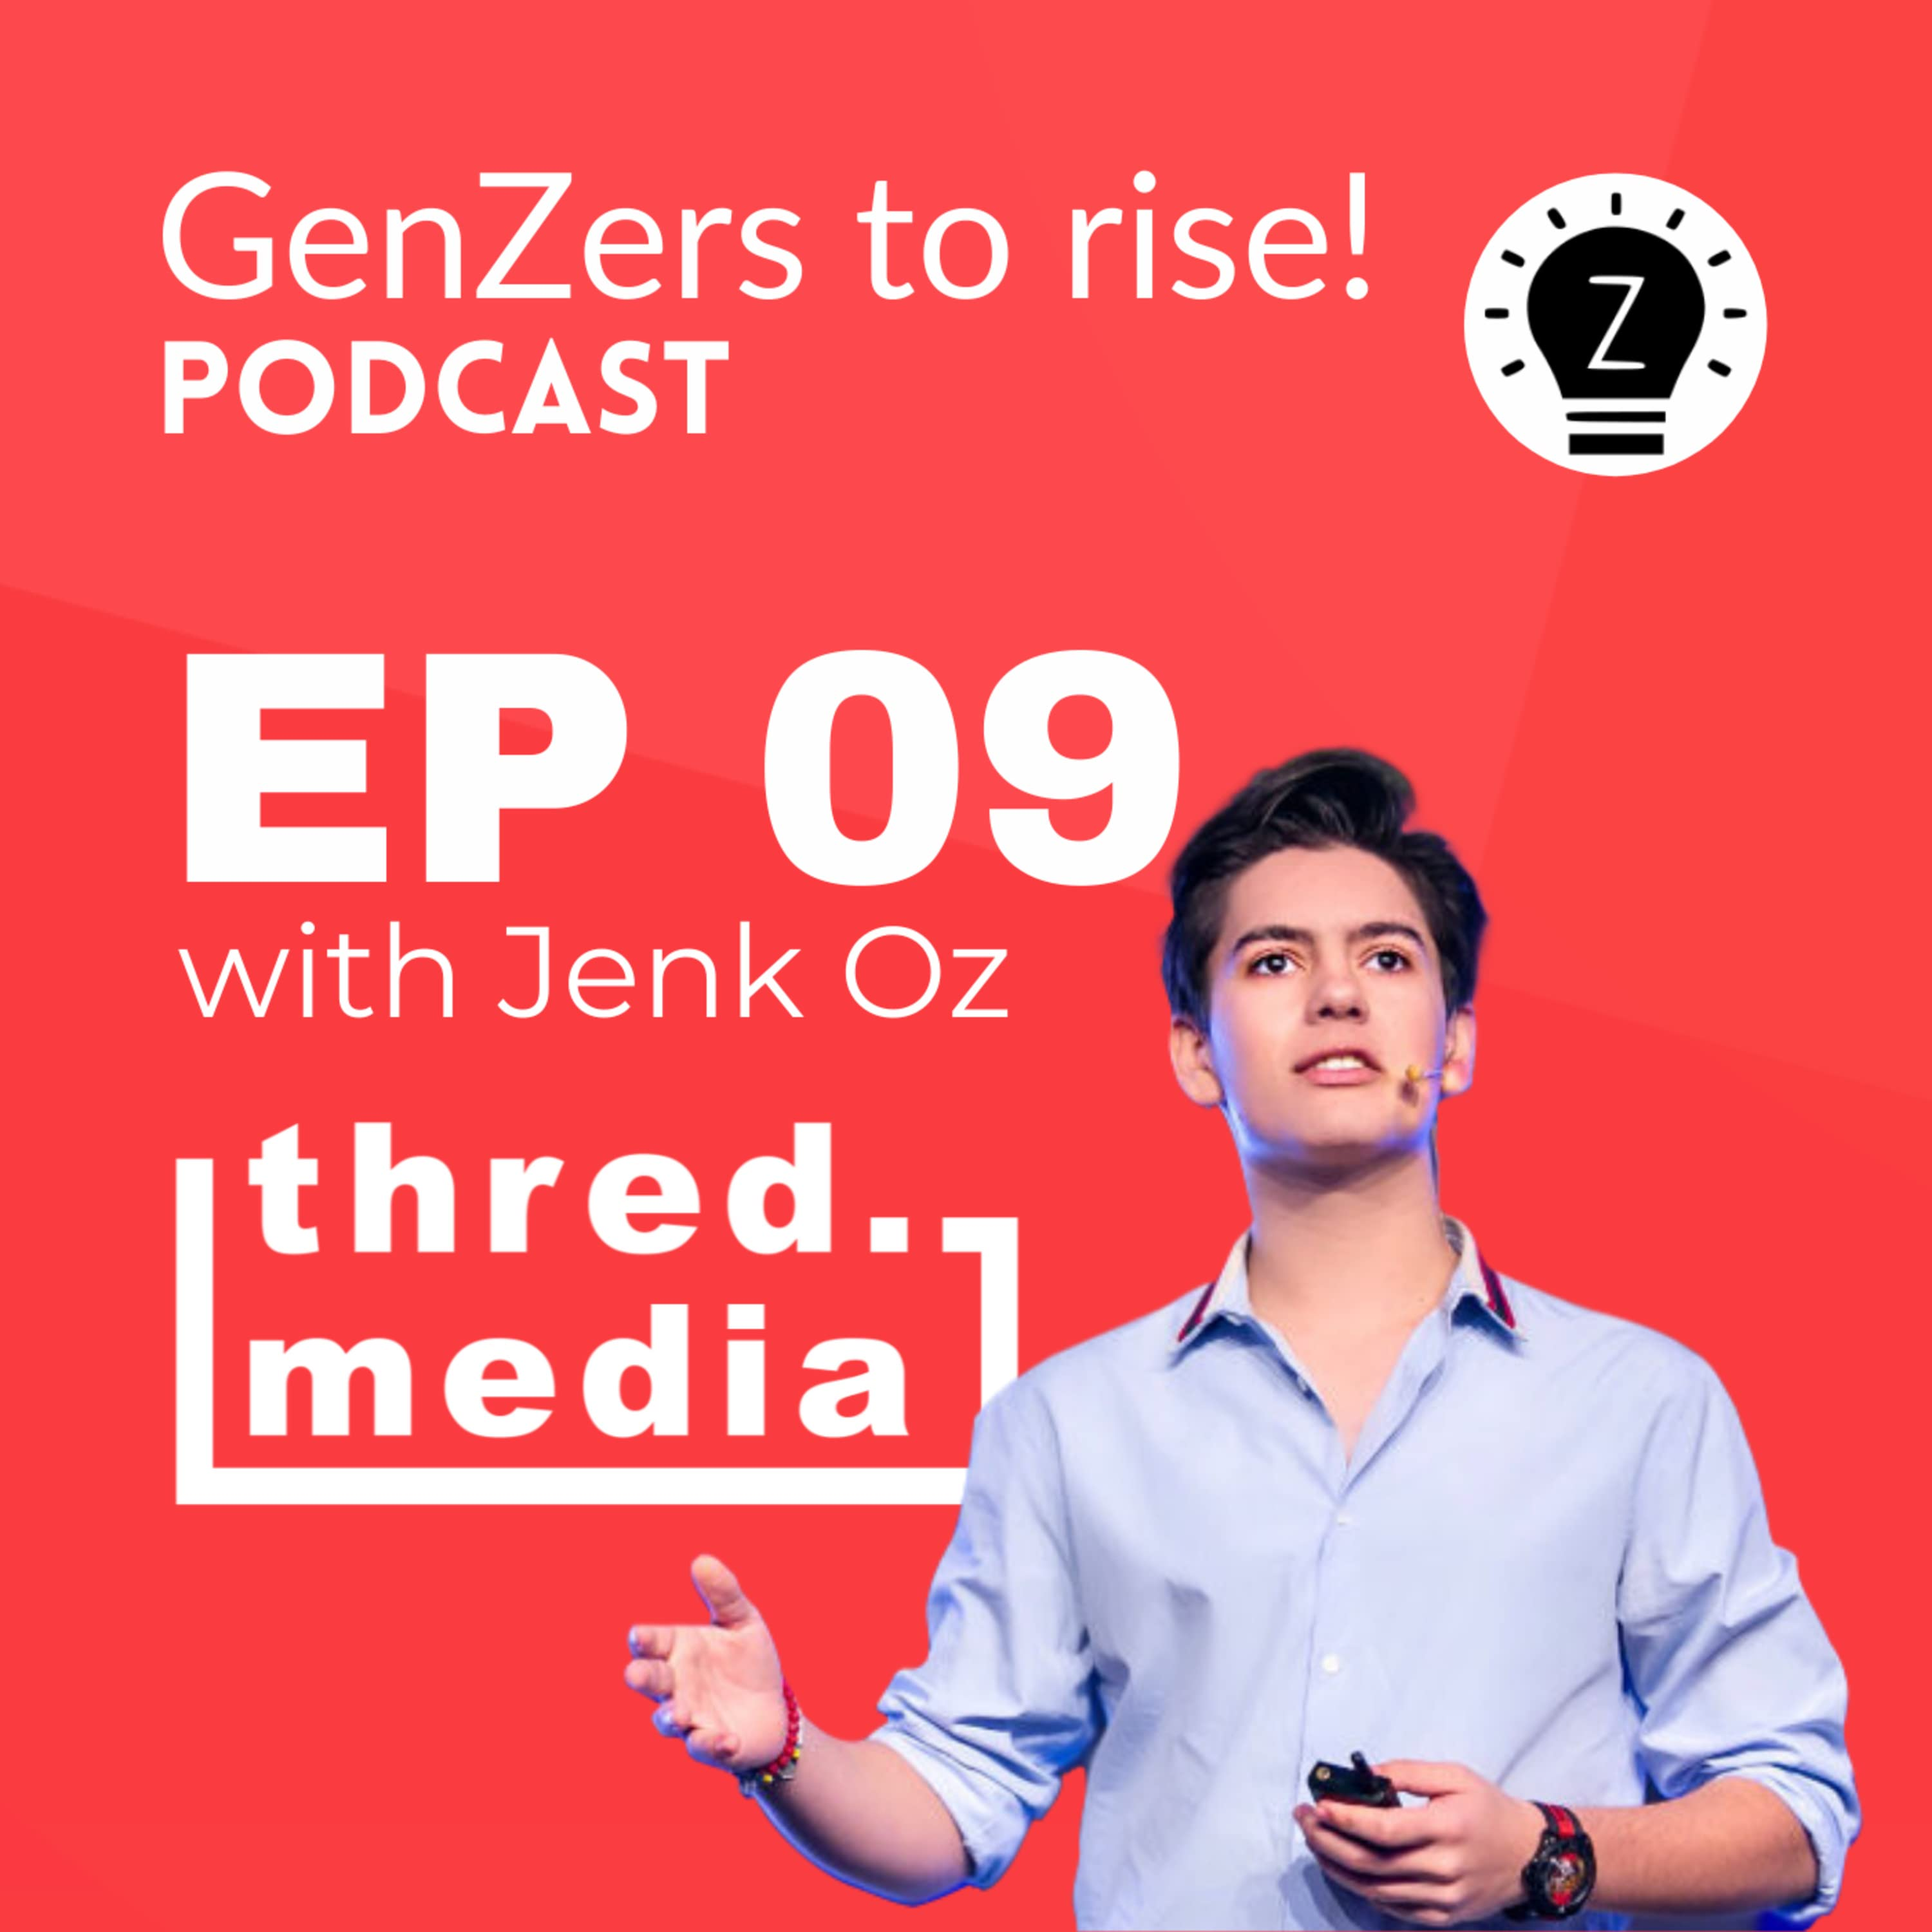 Building a social impact centered media company with Jenk Oz